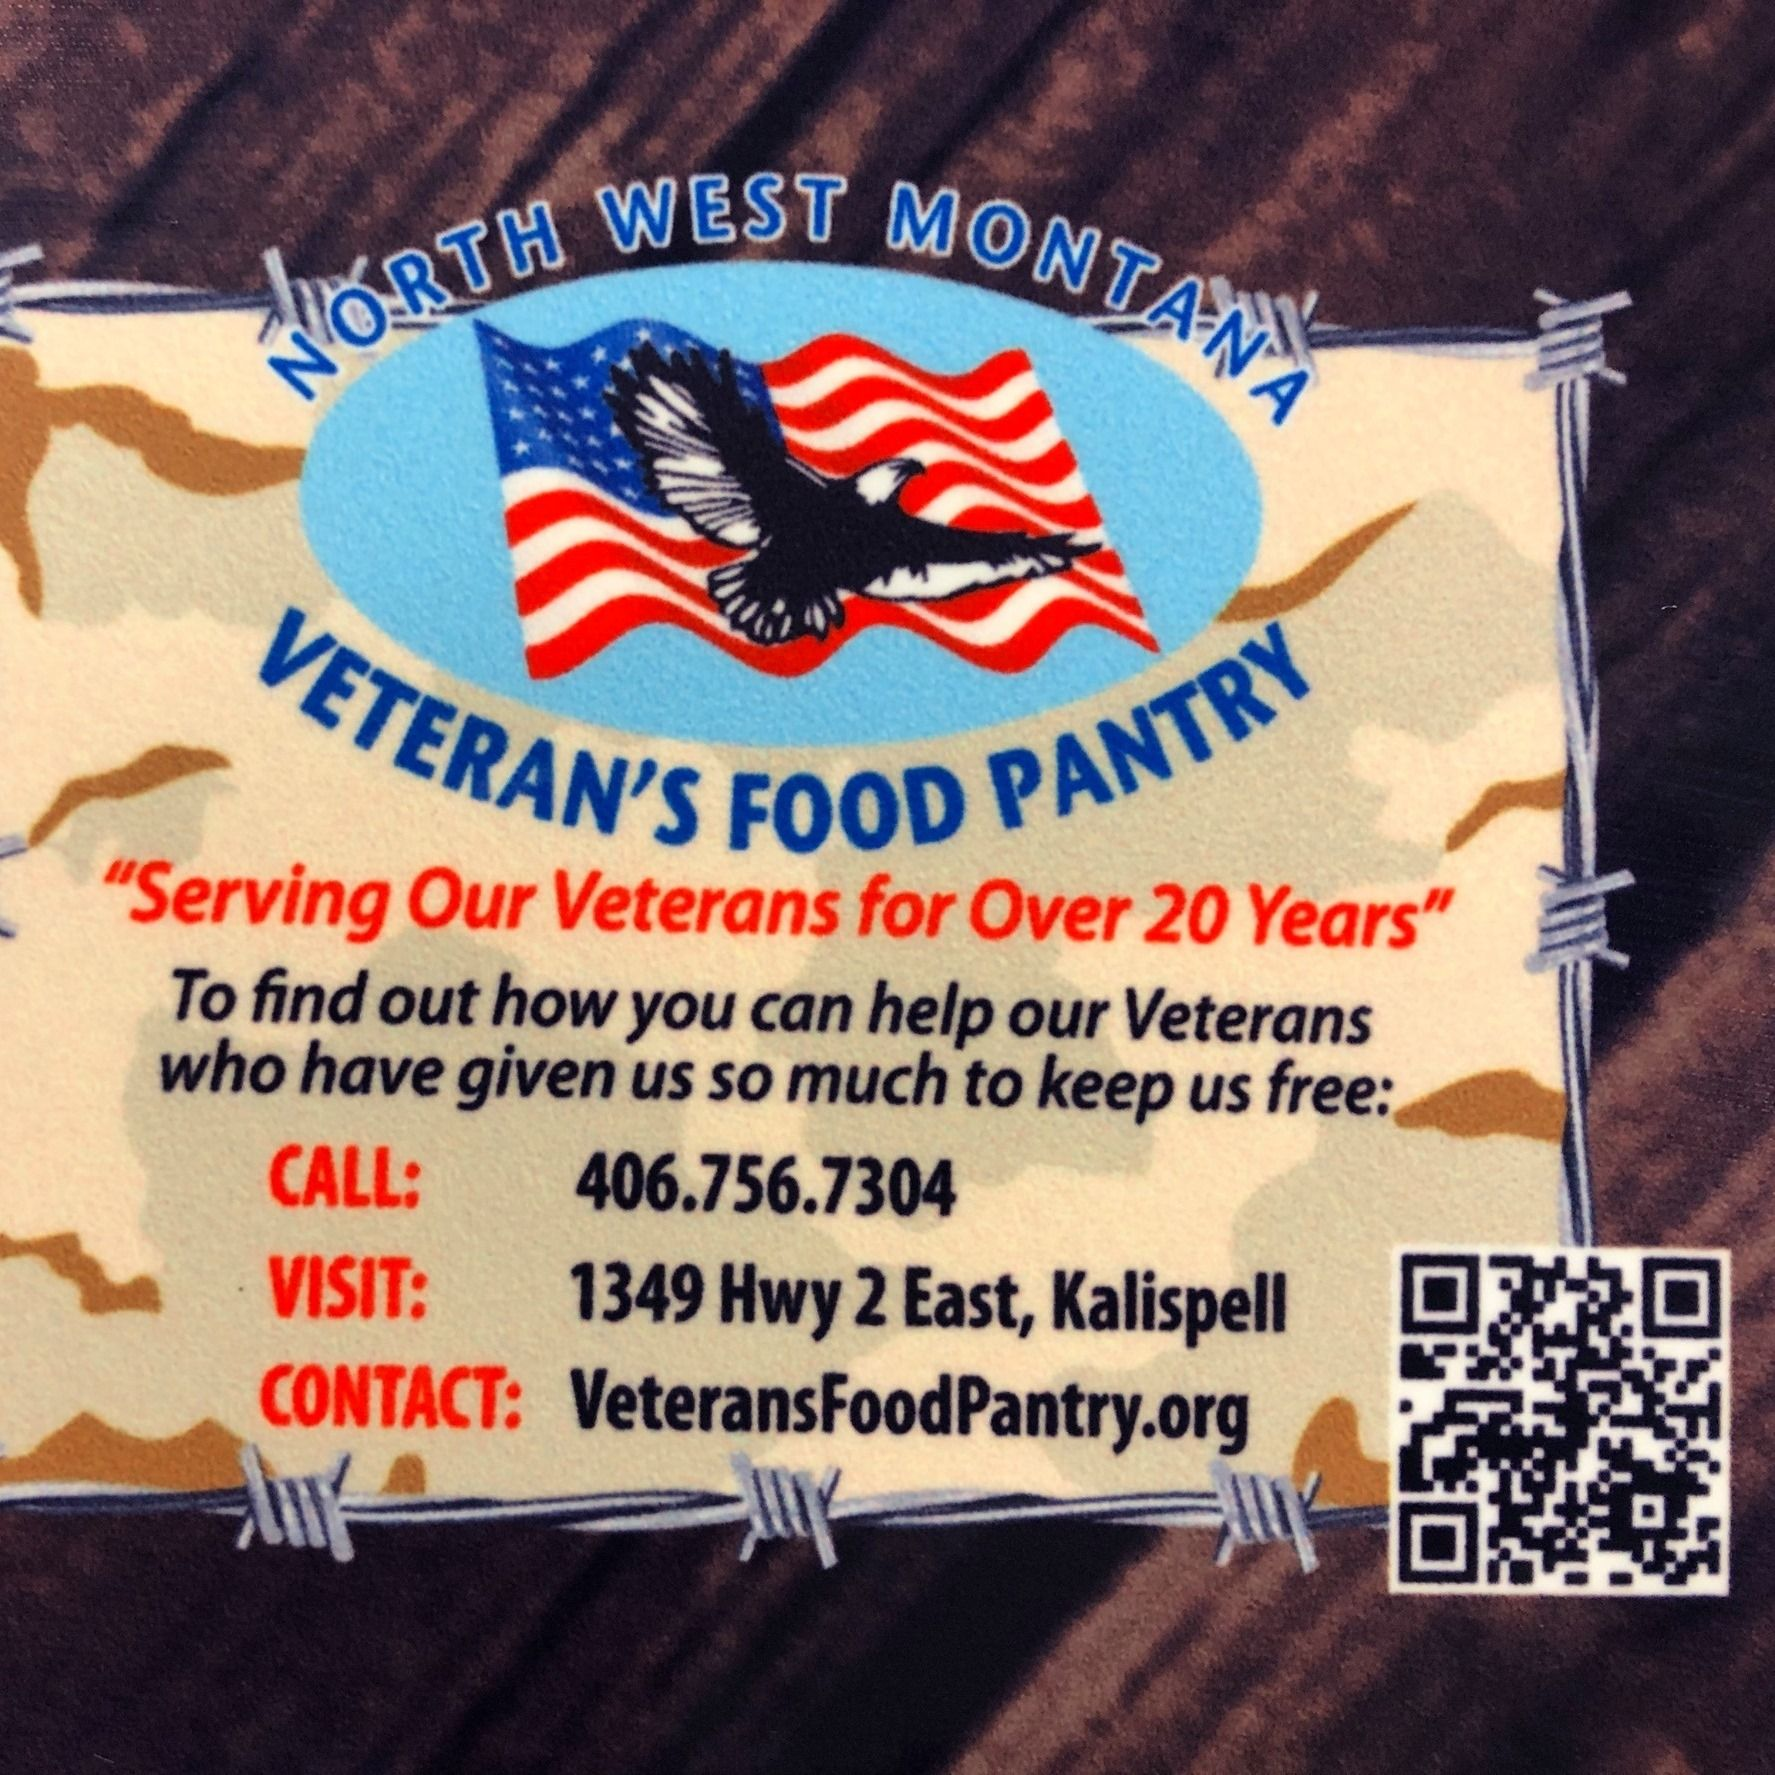 North West Montana Veterans Stand Down and Food Pantry